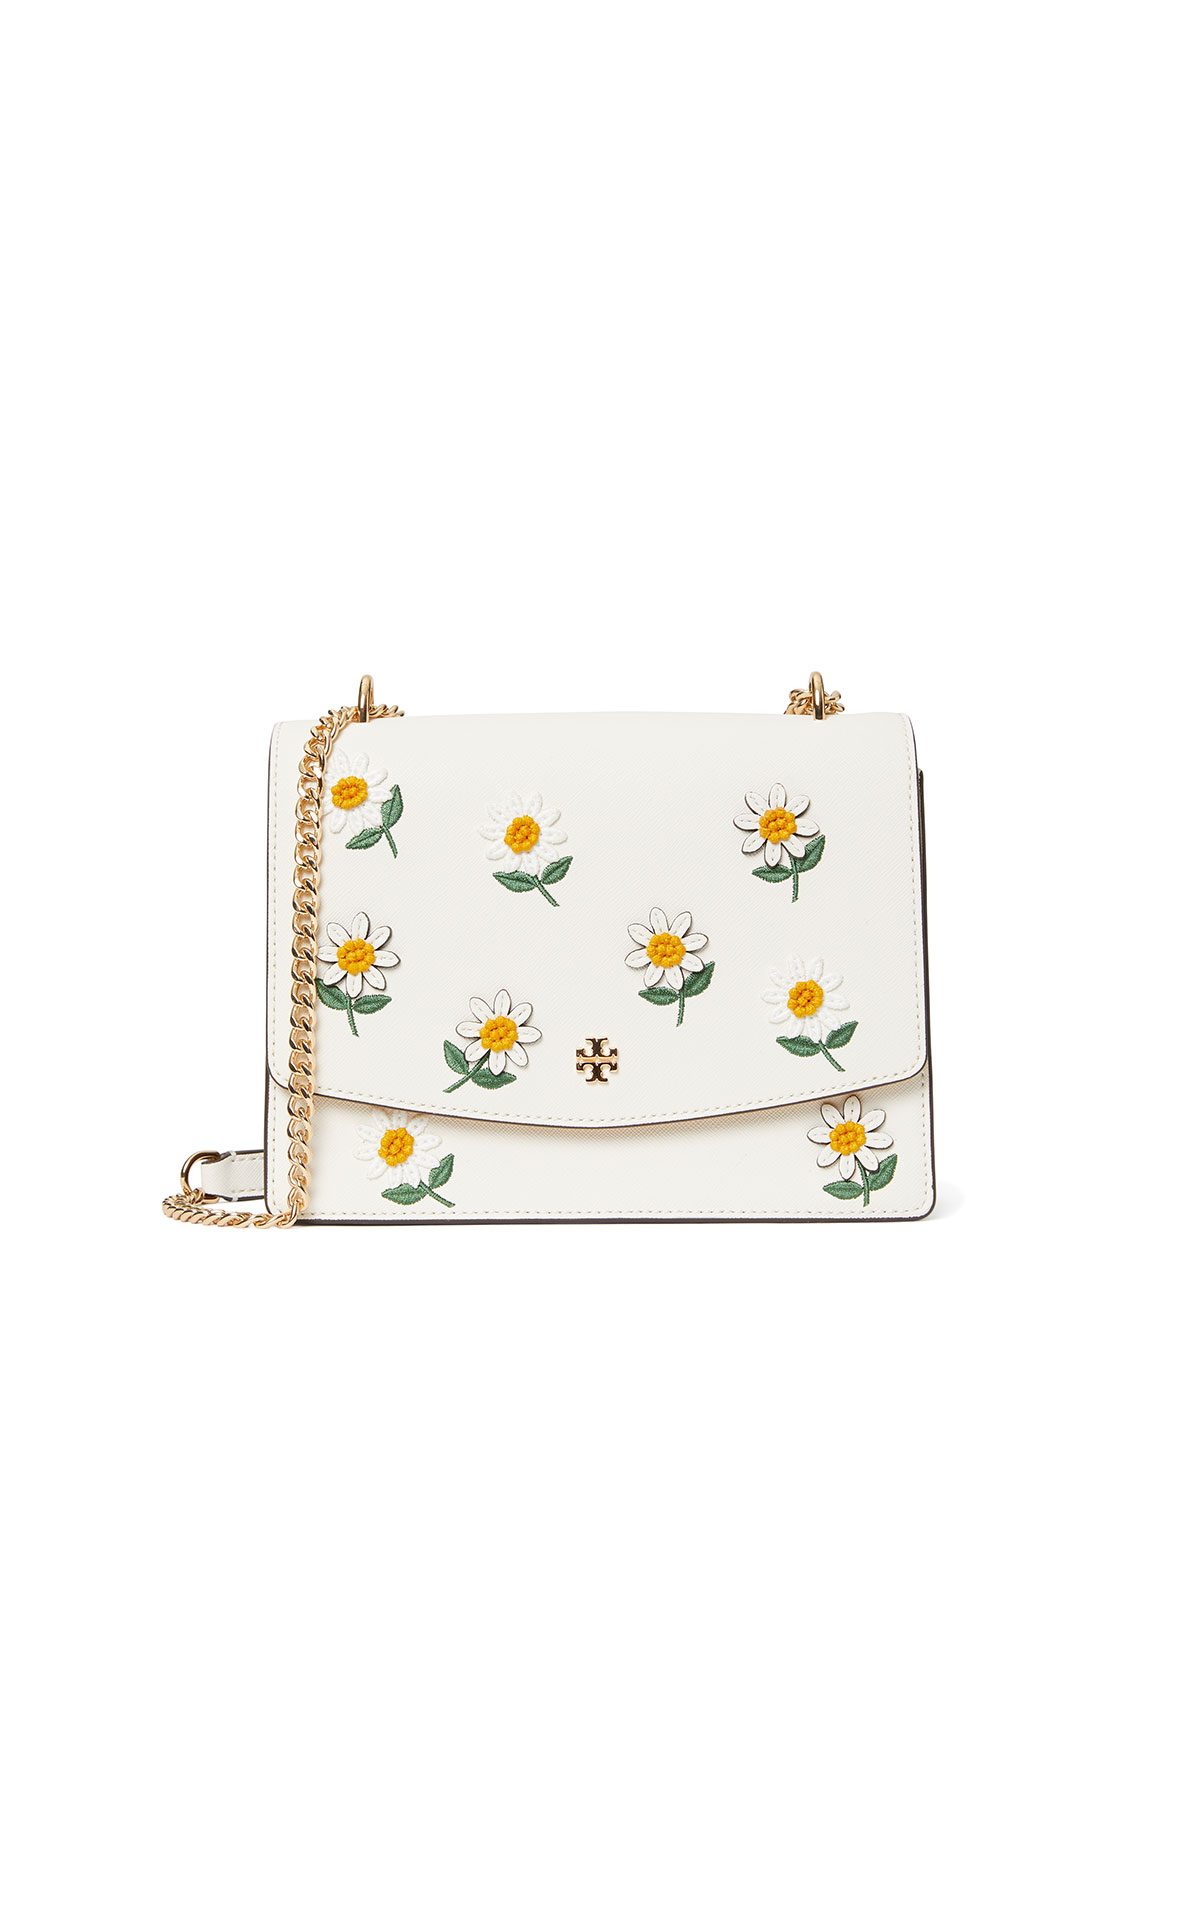 Tory Burch Emerson Daisy Applique Flap Adjustable Shoulder Bag at The Bicester Village Shopping Collection